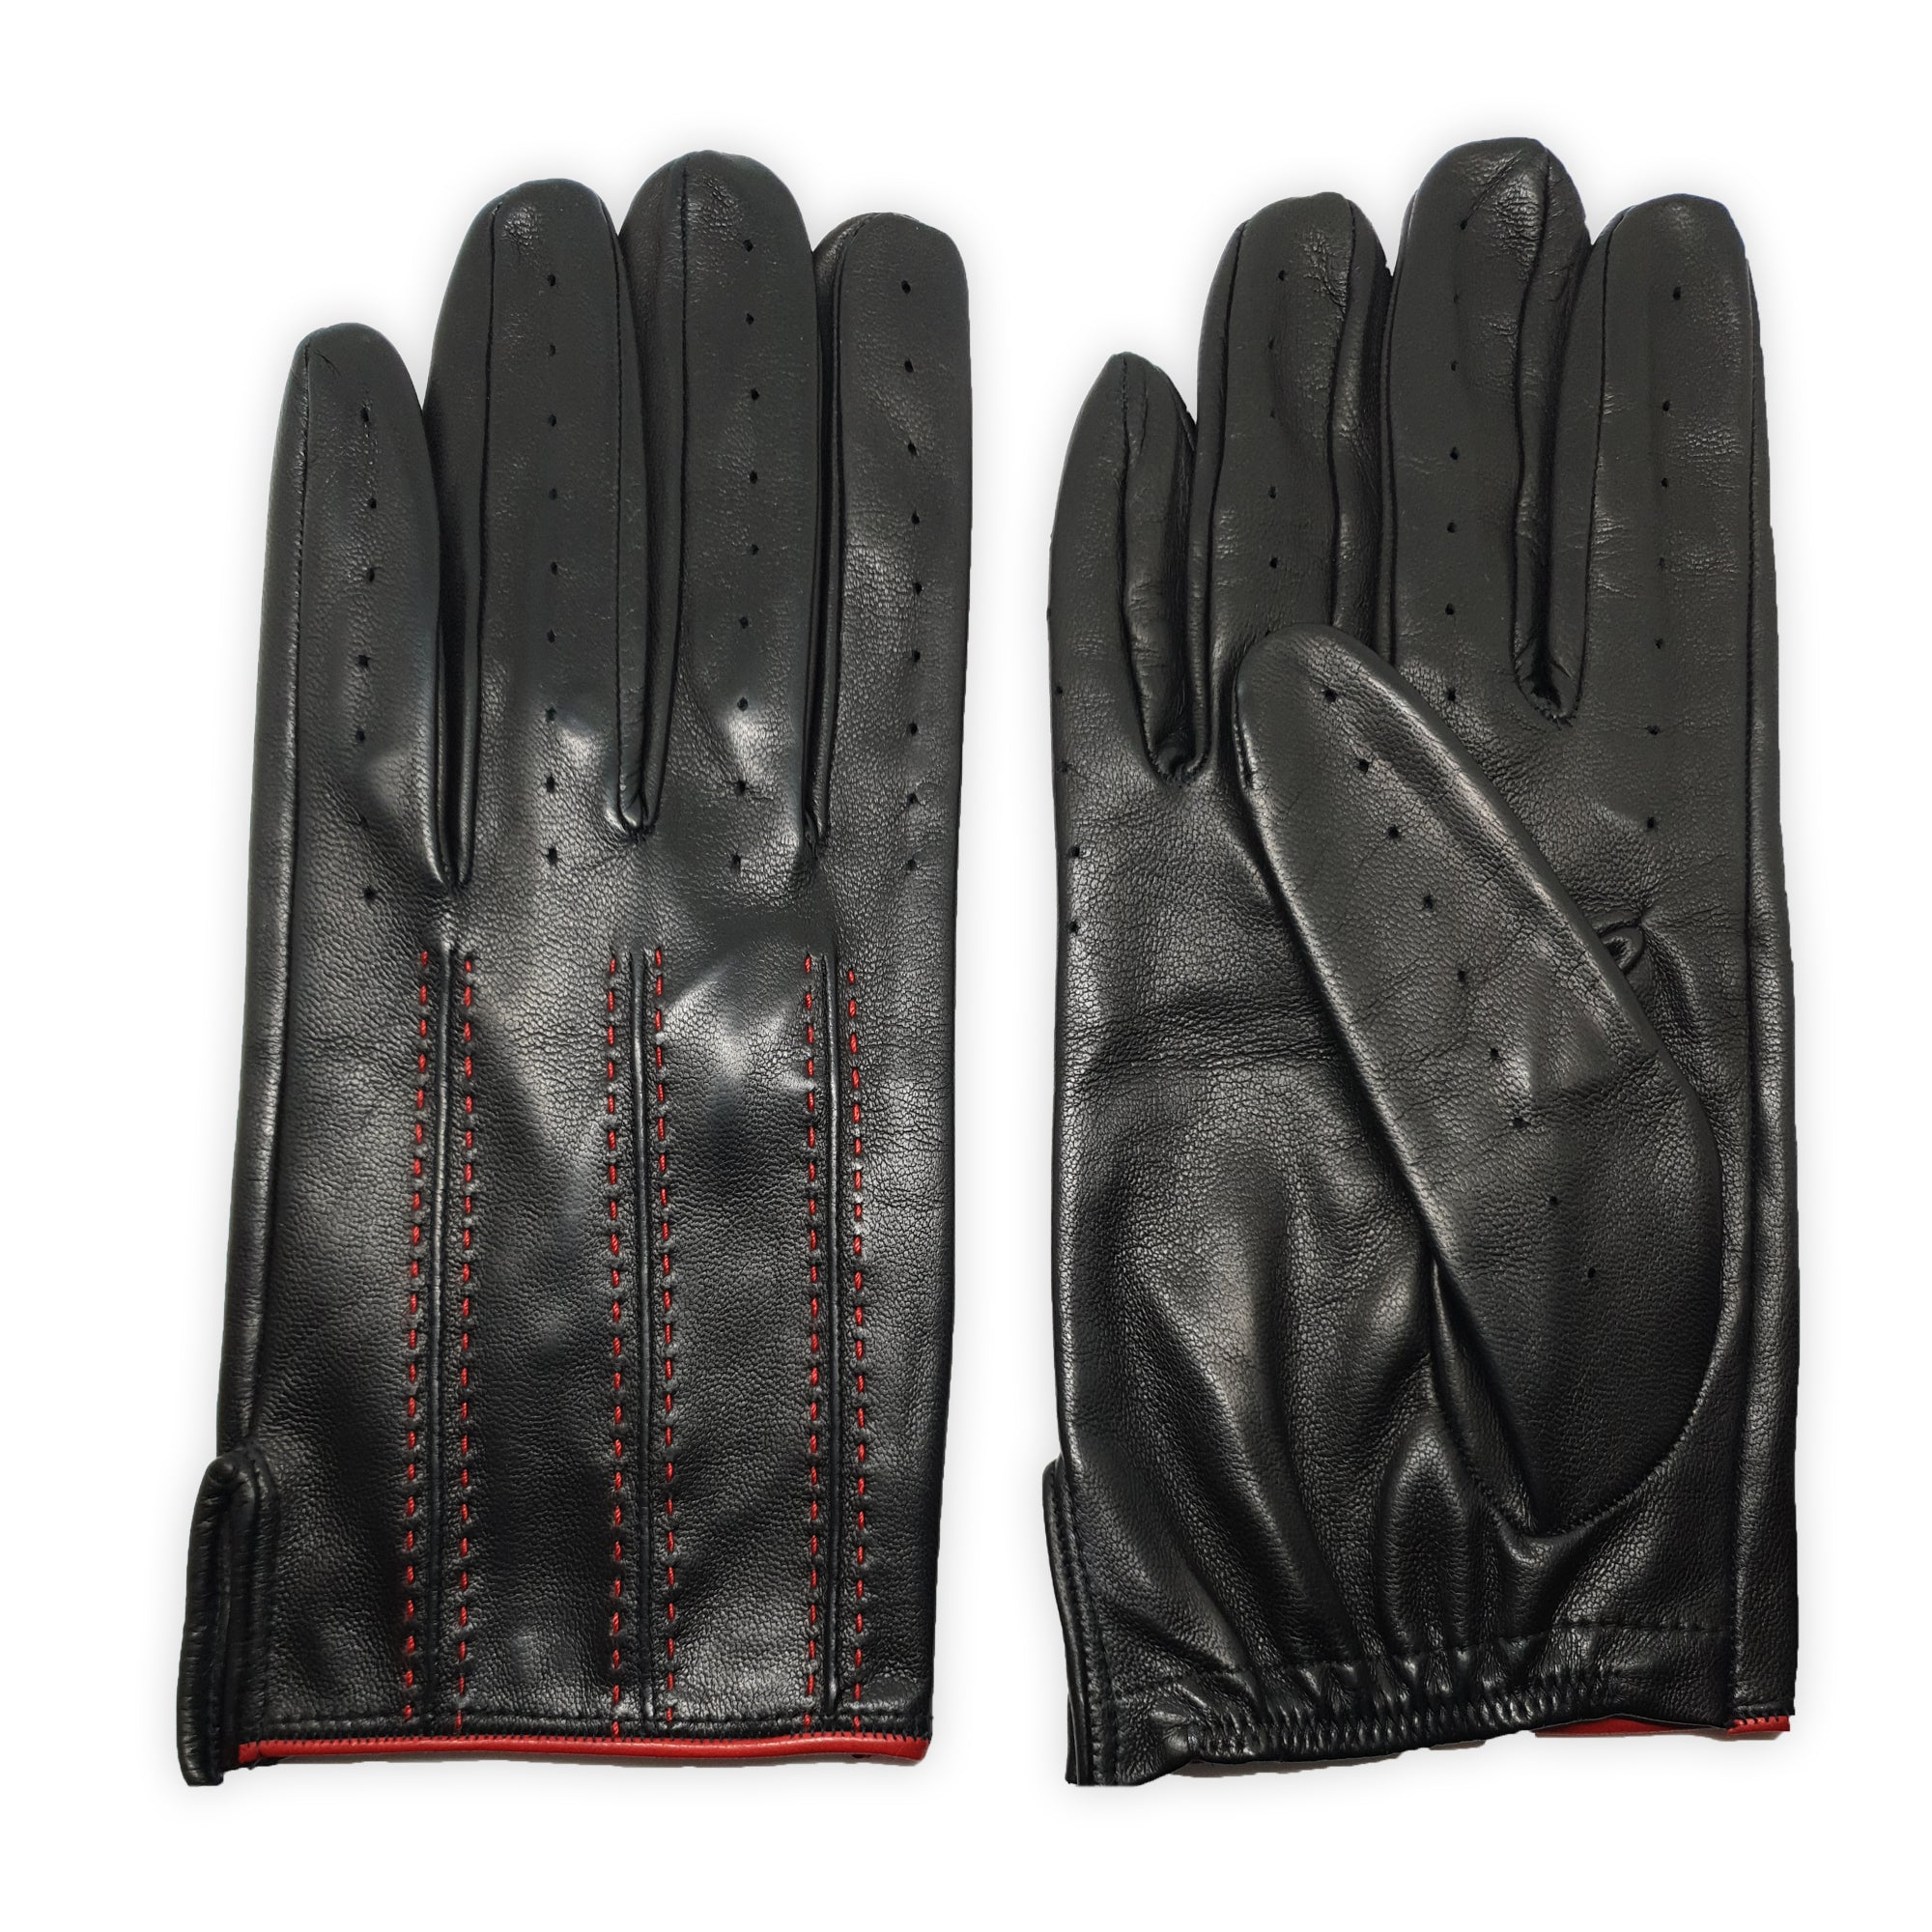 Unlined genuine leather gloves stitched inside contrasting inserts, elastic under the wrist